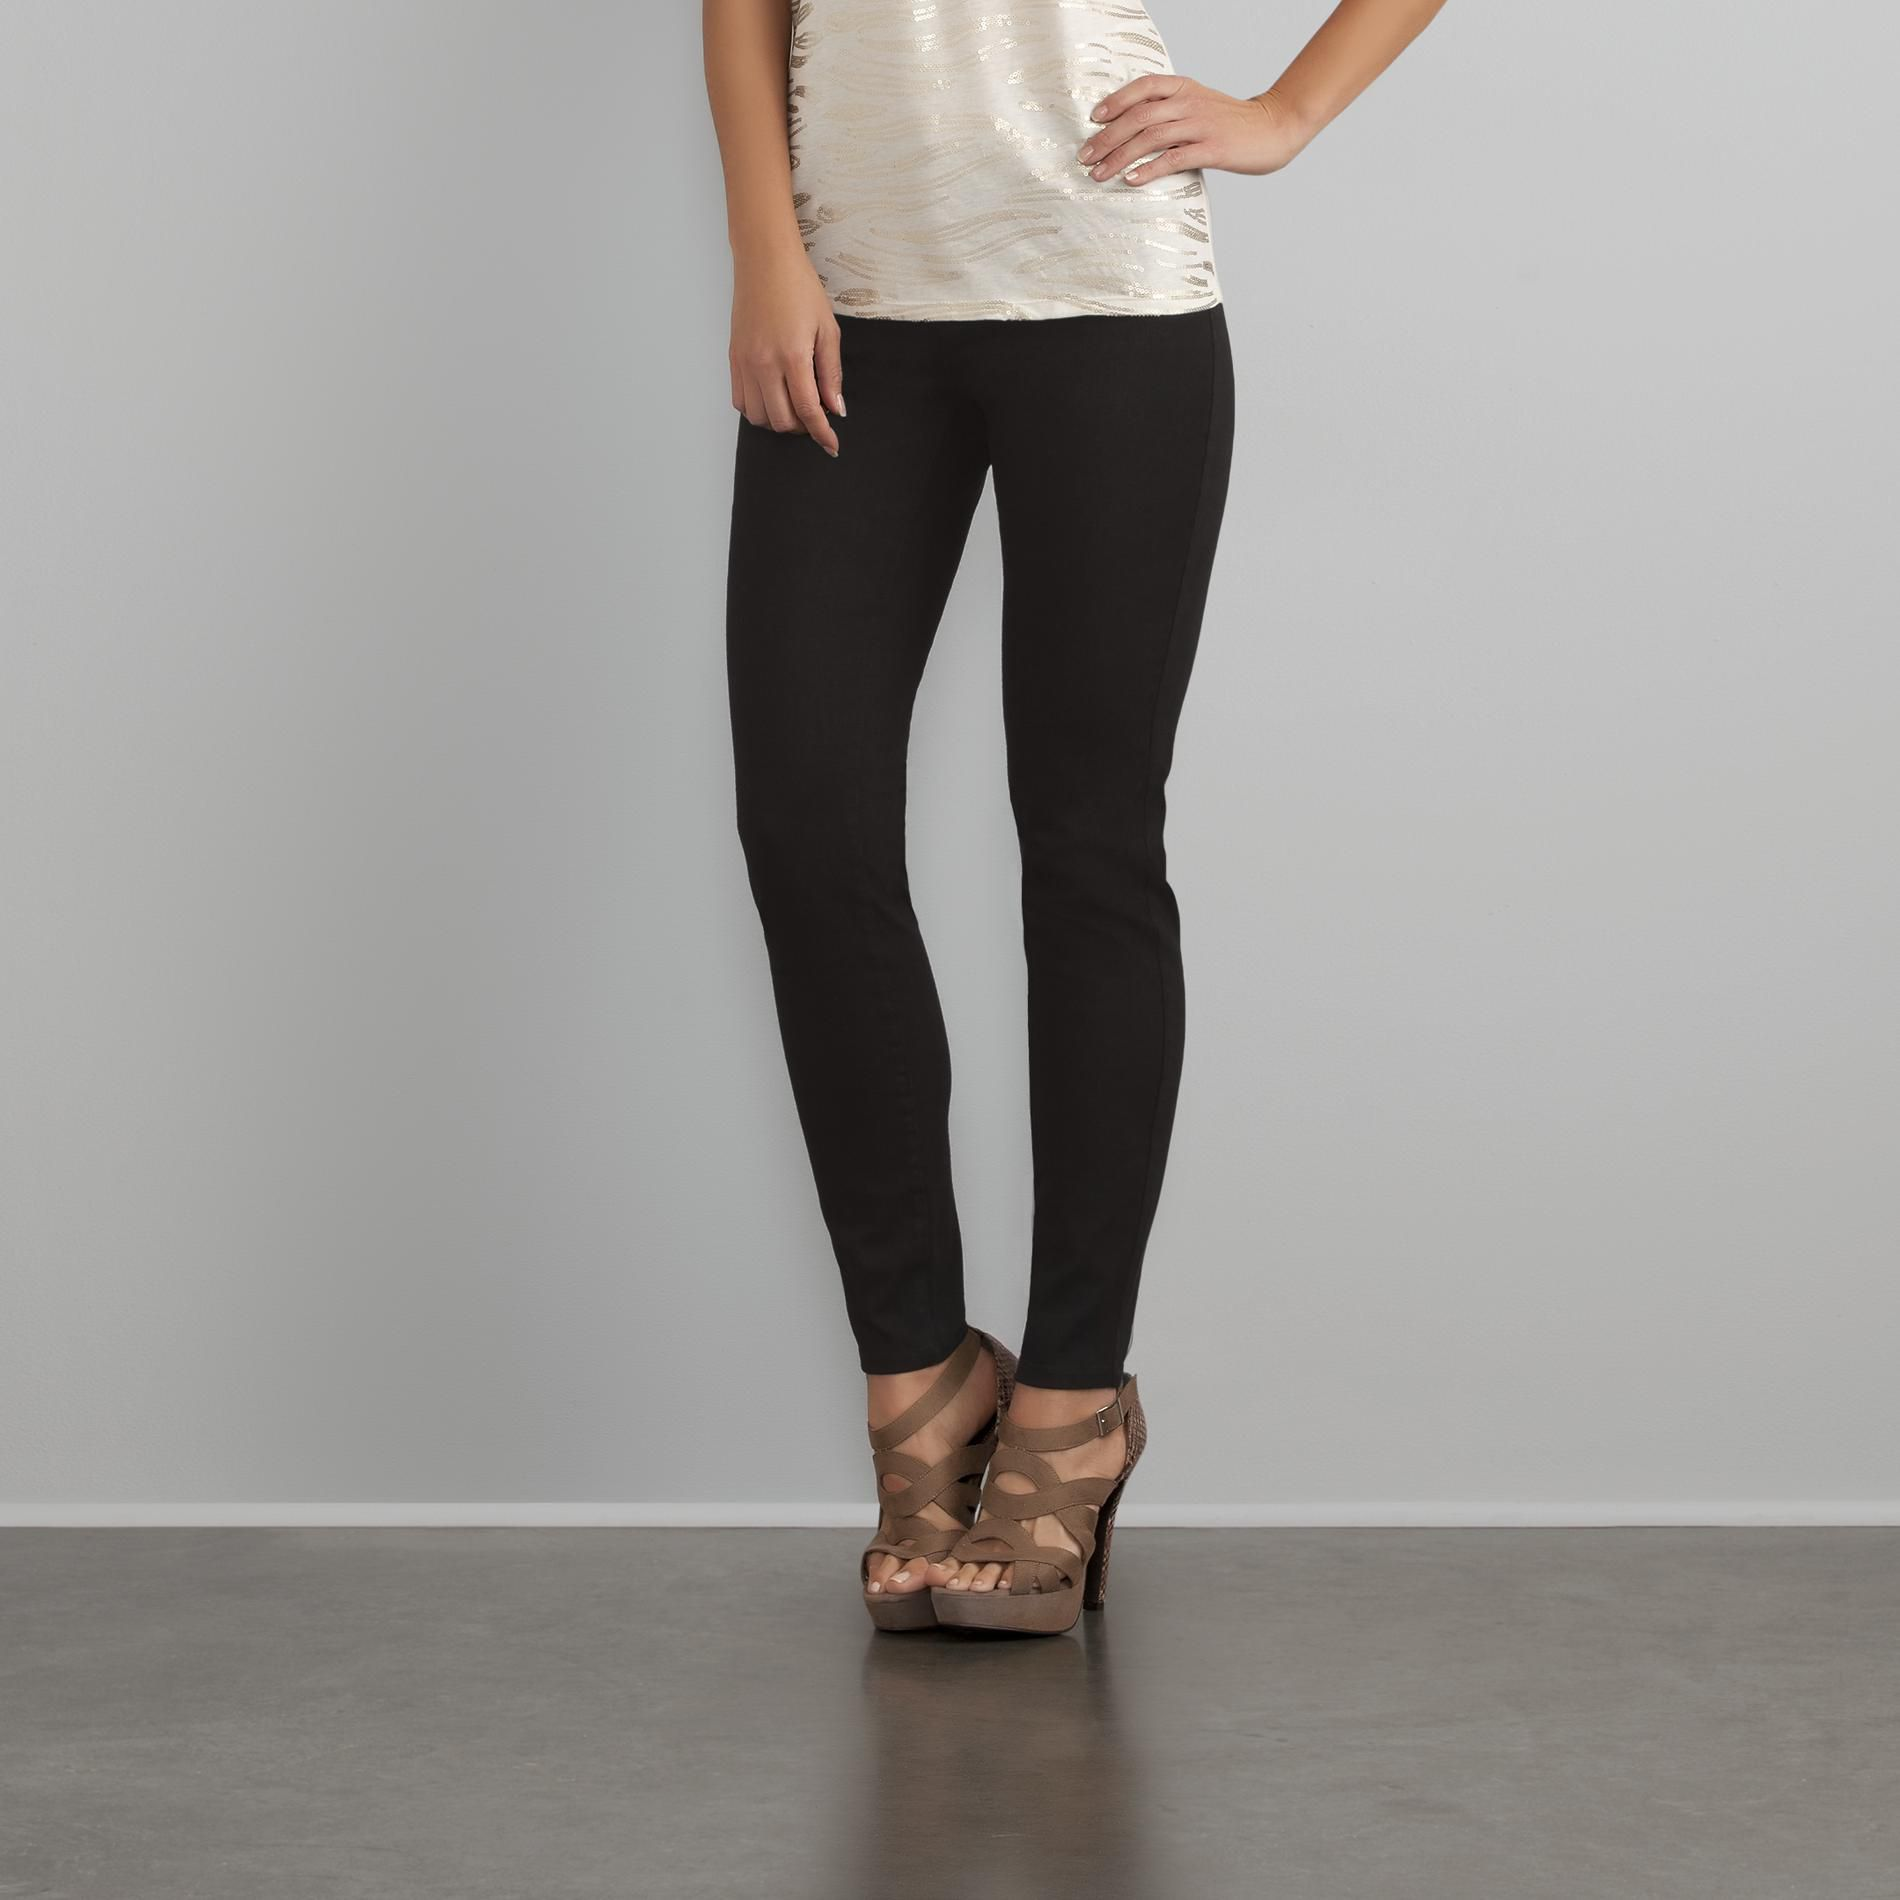 Sofia by Sofia Vergara Women's Colored Skinny Jeans at Kmart.com